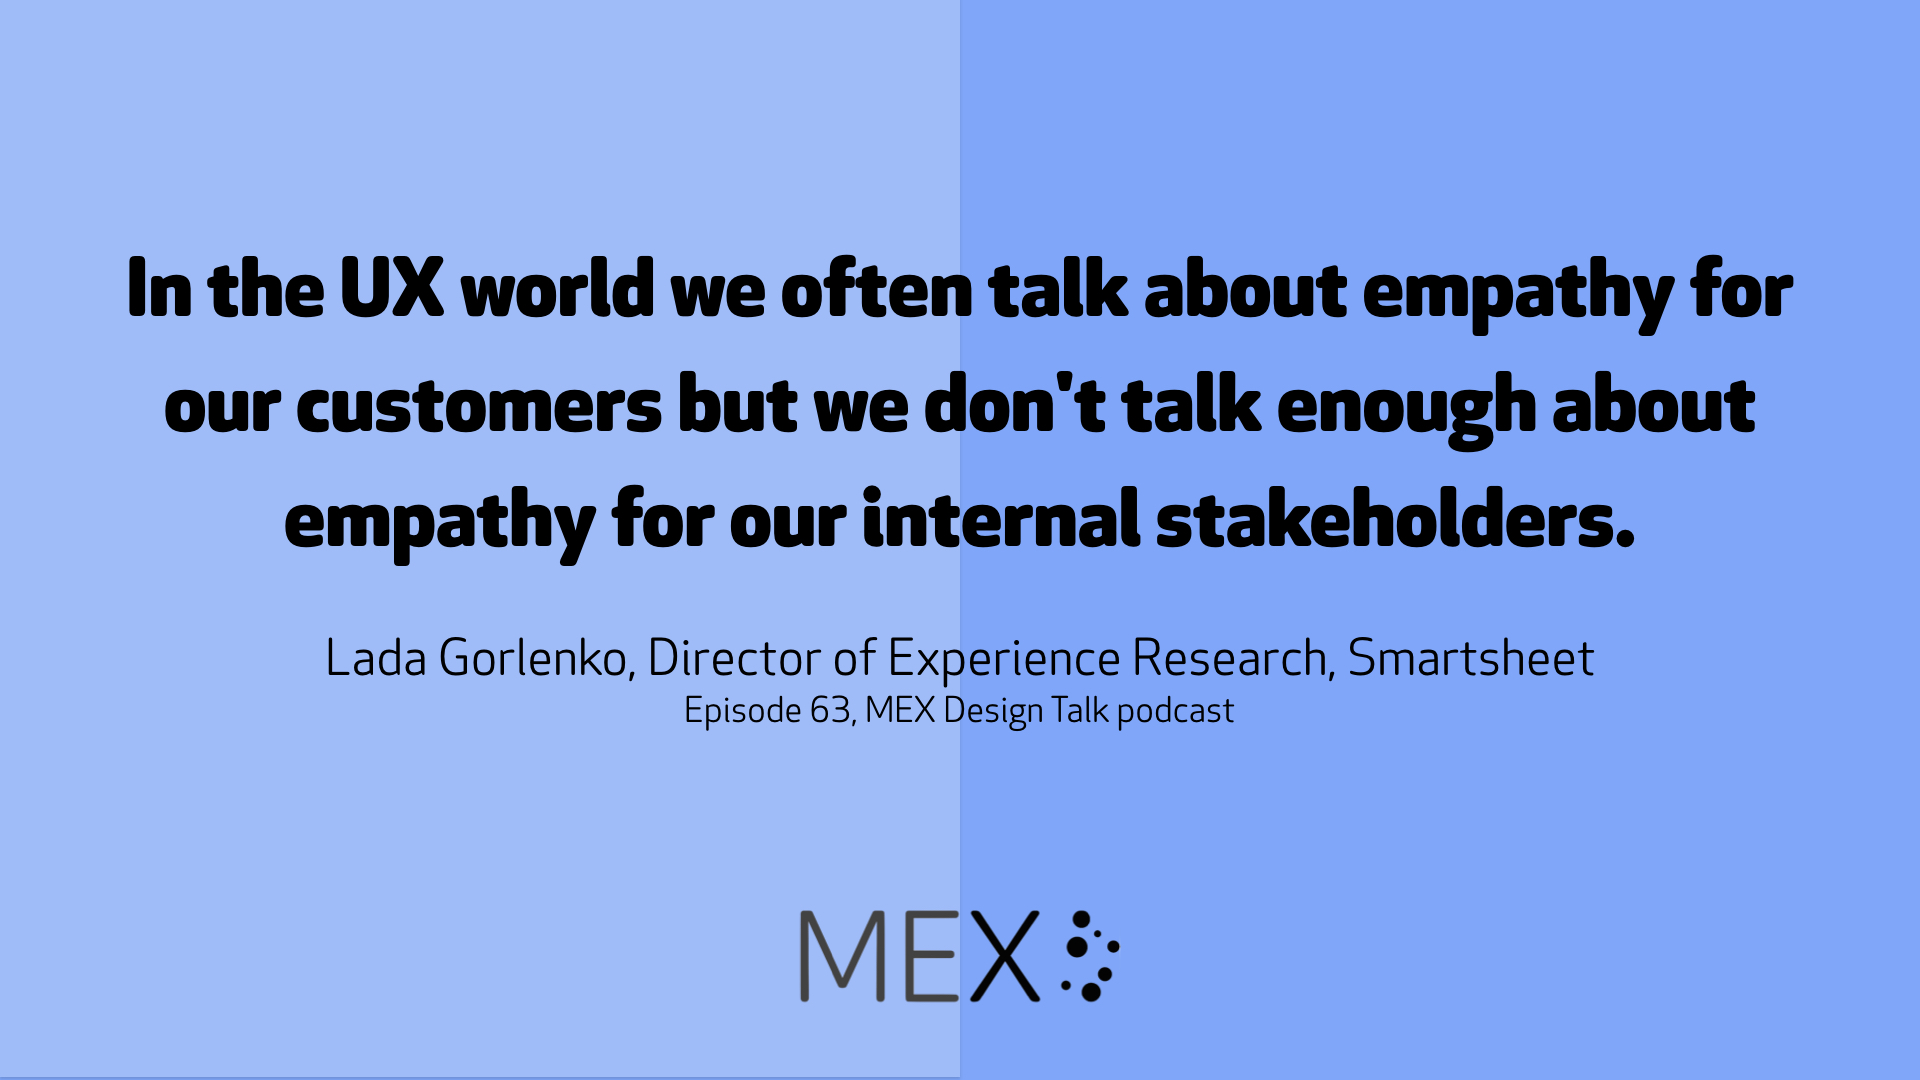 In the UX world we often talk about empathy for our customers but we don't talk enough about empathy for our internal stakeholders. Lada Gorlenko, Director of Experience Research, Smartsheet Episode 63, MEX Design Talk podcast